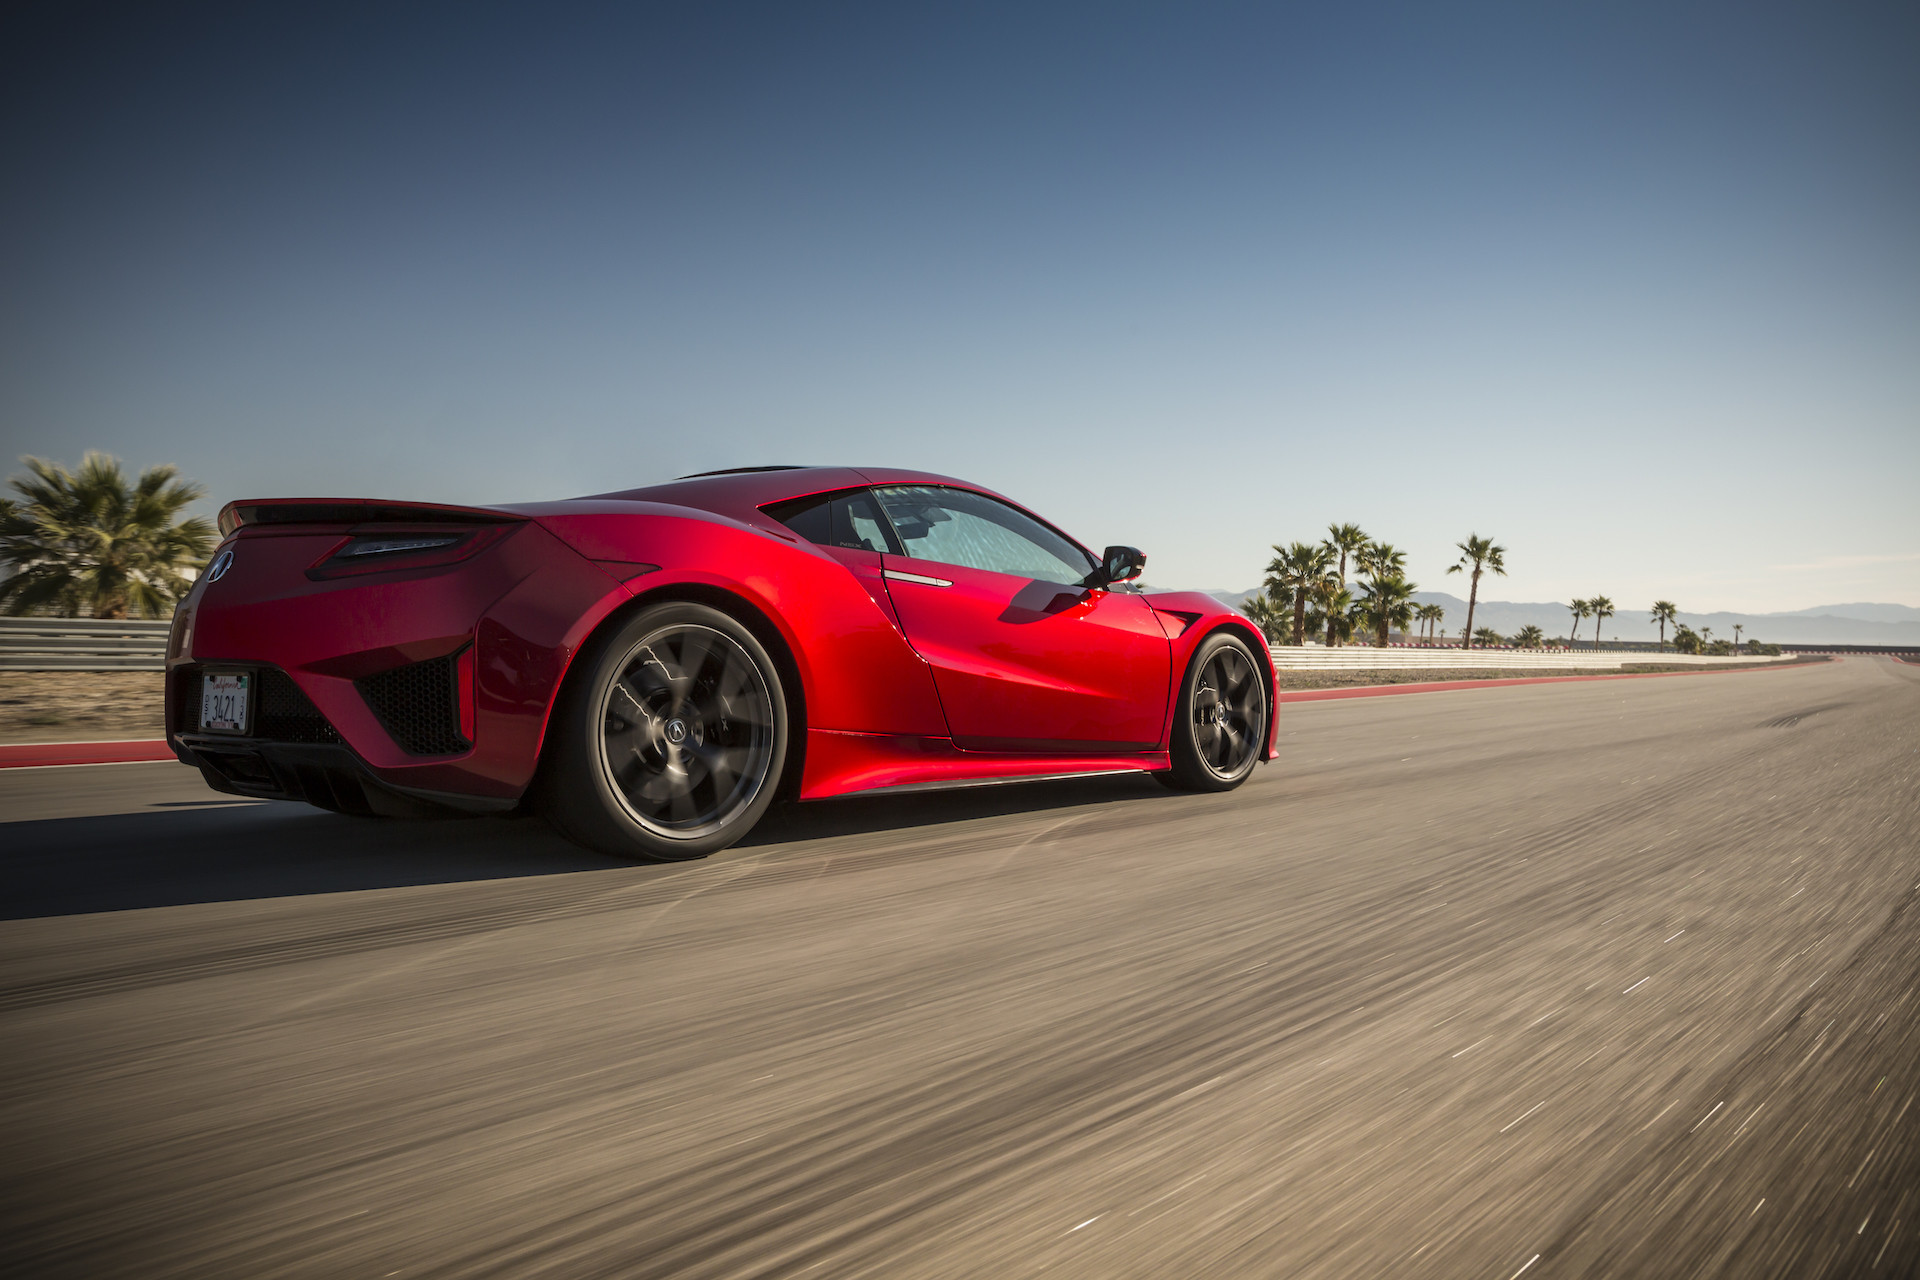 2018 Acura Nsx Wallpapers (69+ background pictures)